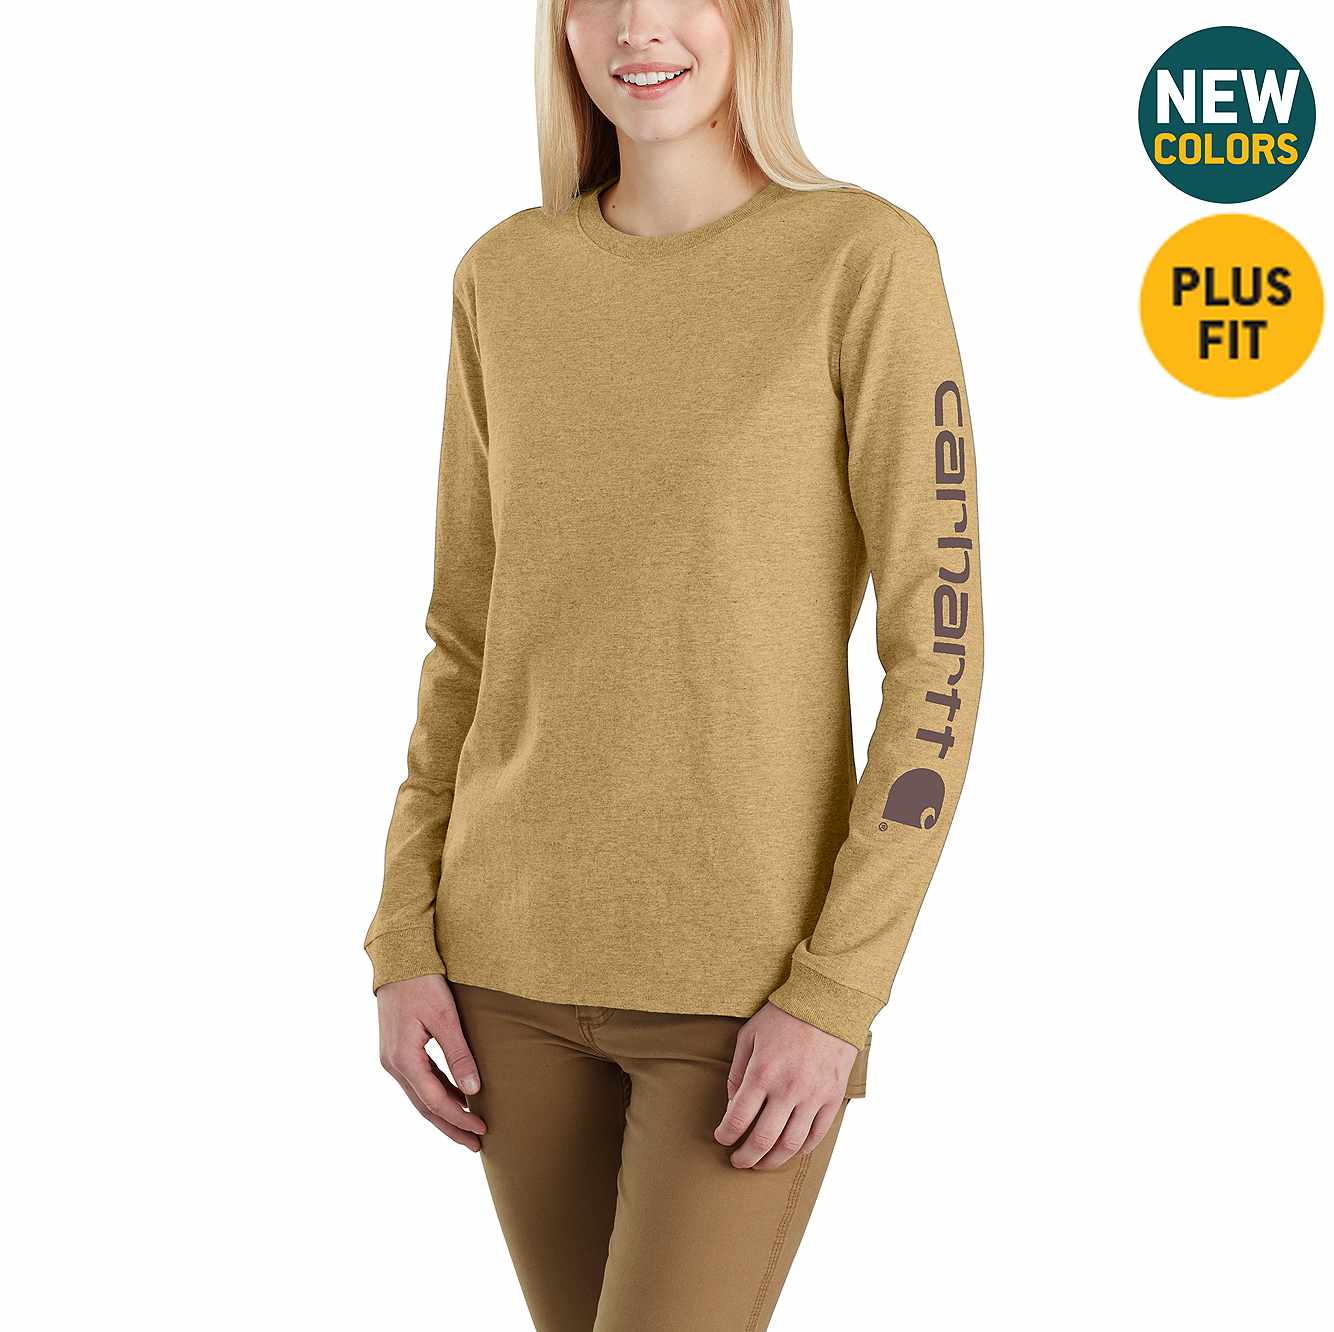 Picture of WK231 Workwear Sleeve Logo Long-Sleeve T-Shirt in Yellowstone Heather